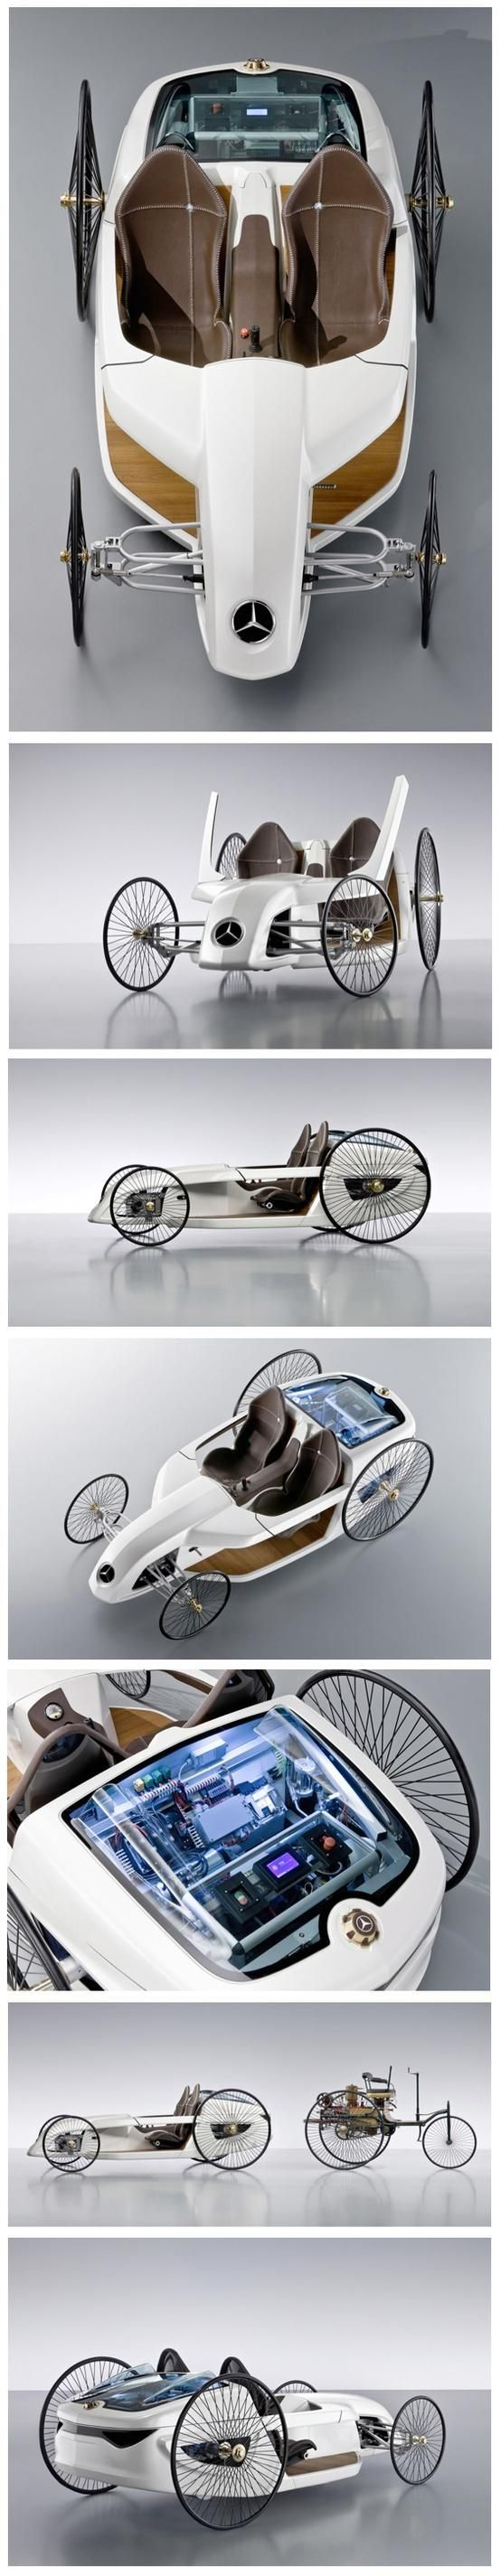 Mercedes-#​Benz F-​CELL Roadster with Hybrid Drive